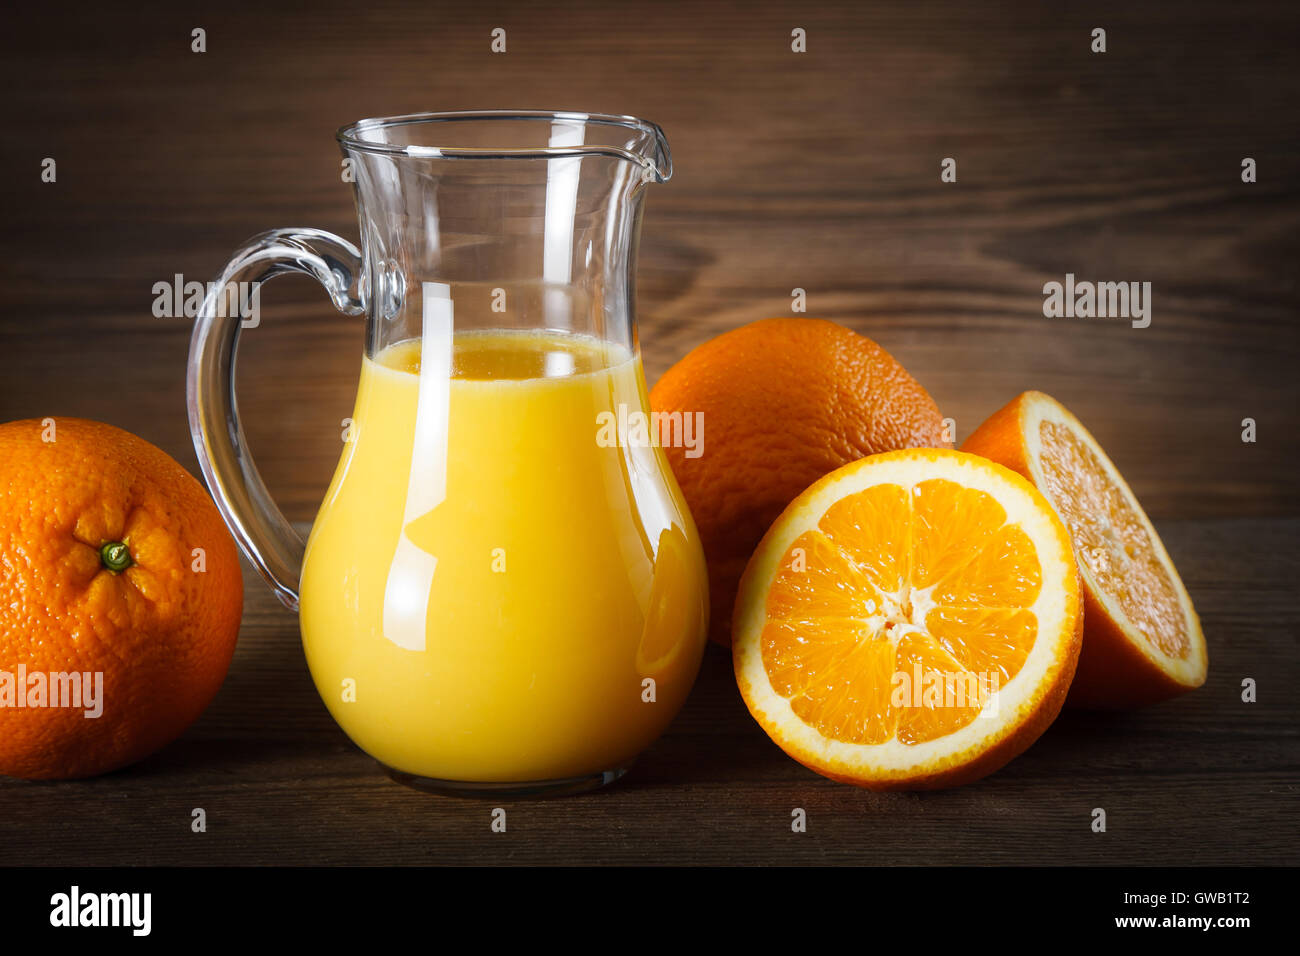 Fresh orange juice in glass pitcher - Stock Image